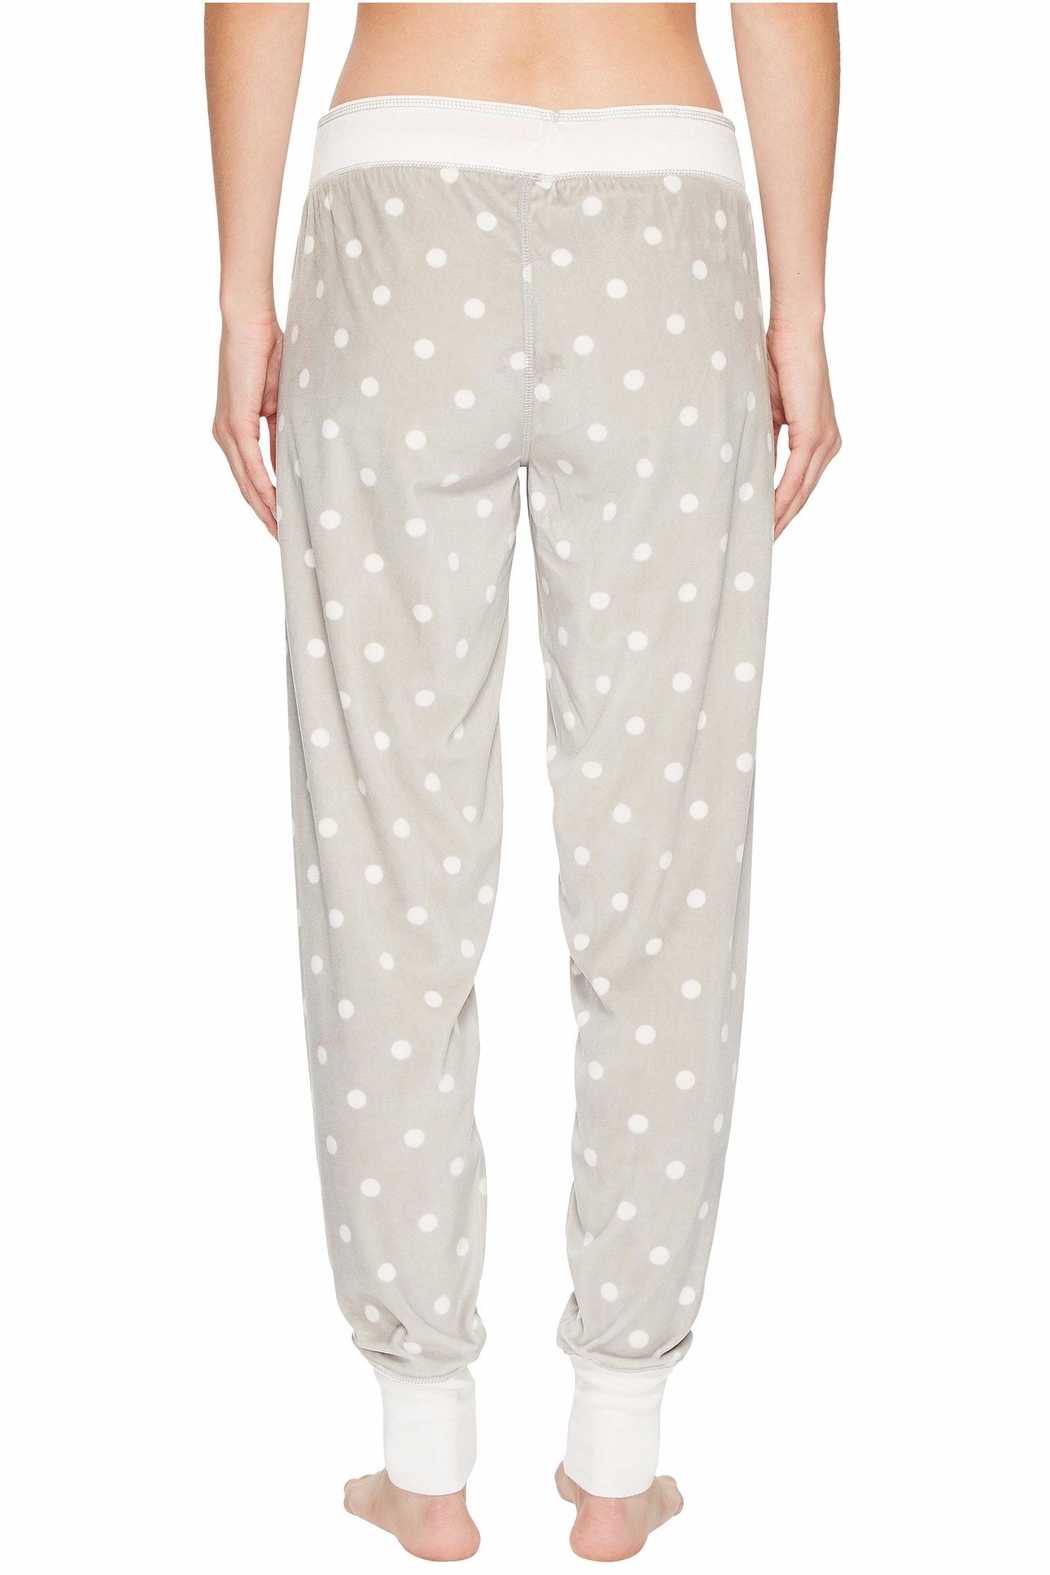 PJ Salvage Cozy Dots Jogger - Back Cropped Image